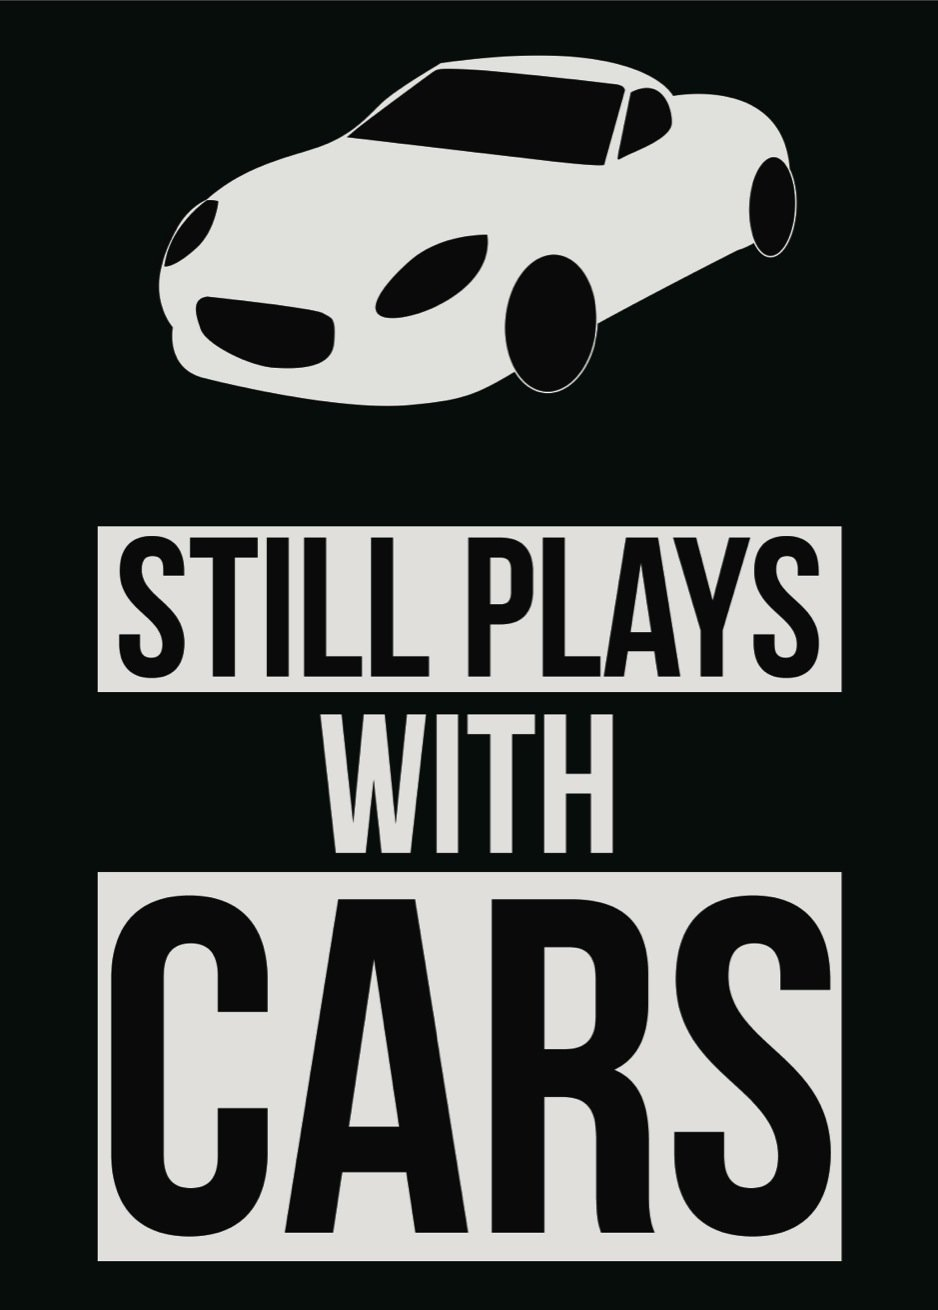 Still Plays With Cars Mechanic Poster Car Picture Tools Wall Decal Sign Large - Aluminum Metal - 6 Pack, 12x18